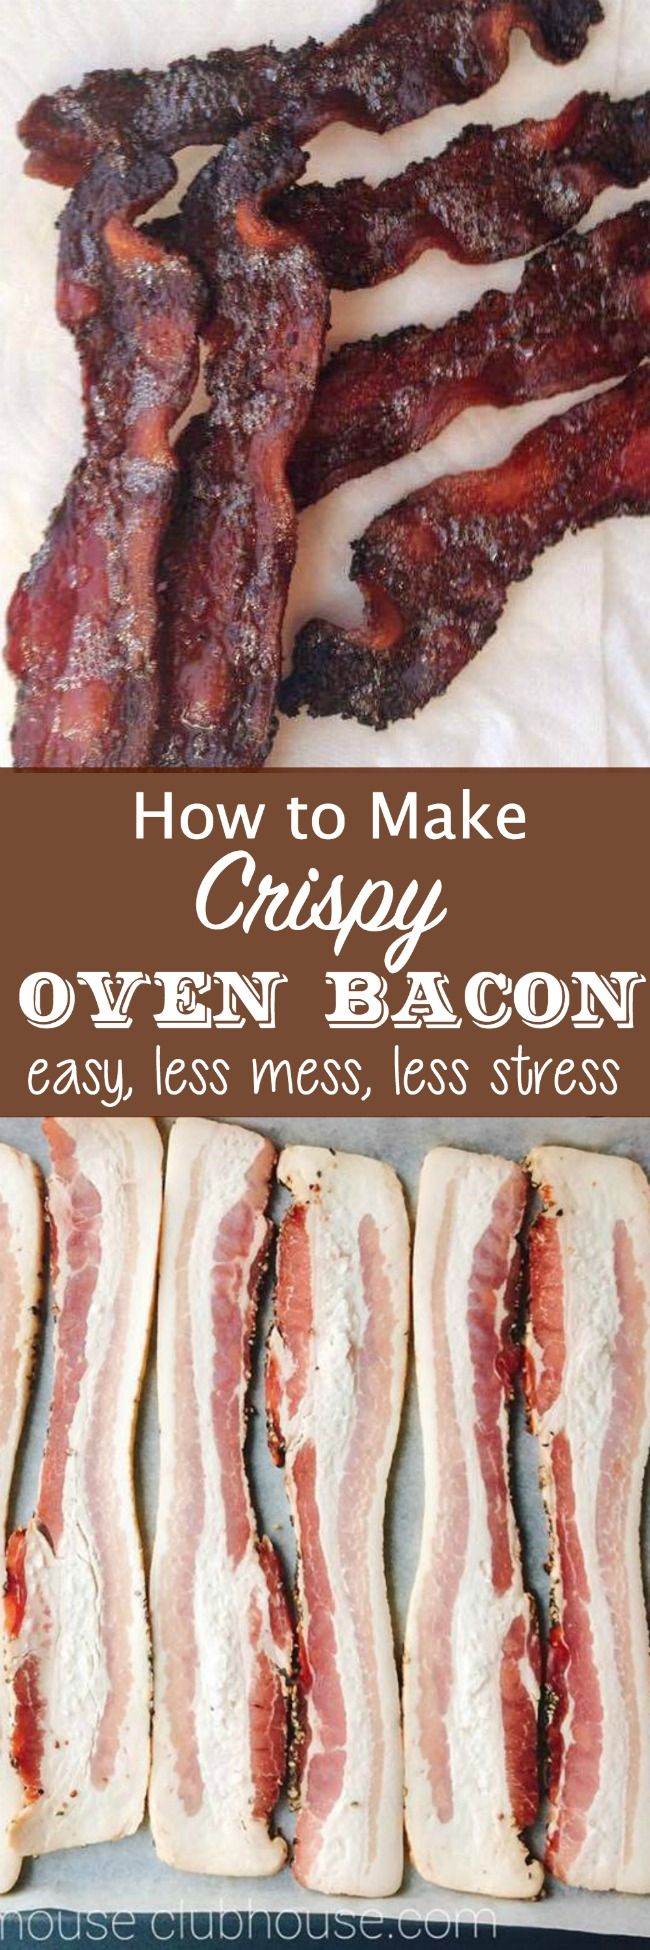 How to cook Prefect, crispy bacon in the oven. oven bacon, oven bacon recipes, oven bacon crispy, oven bacon perfect